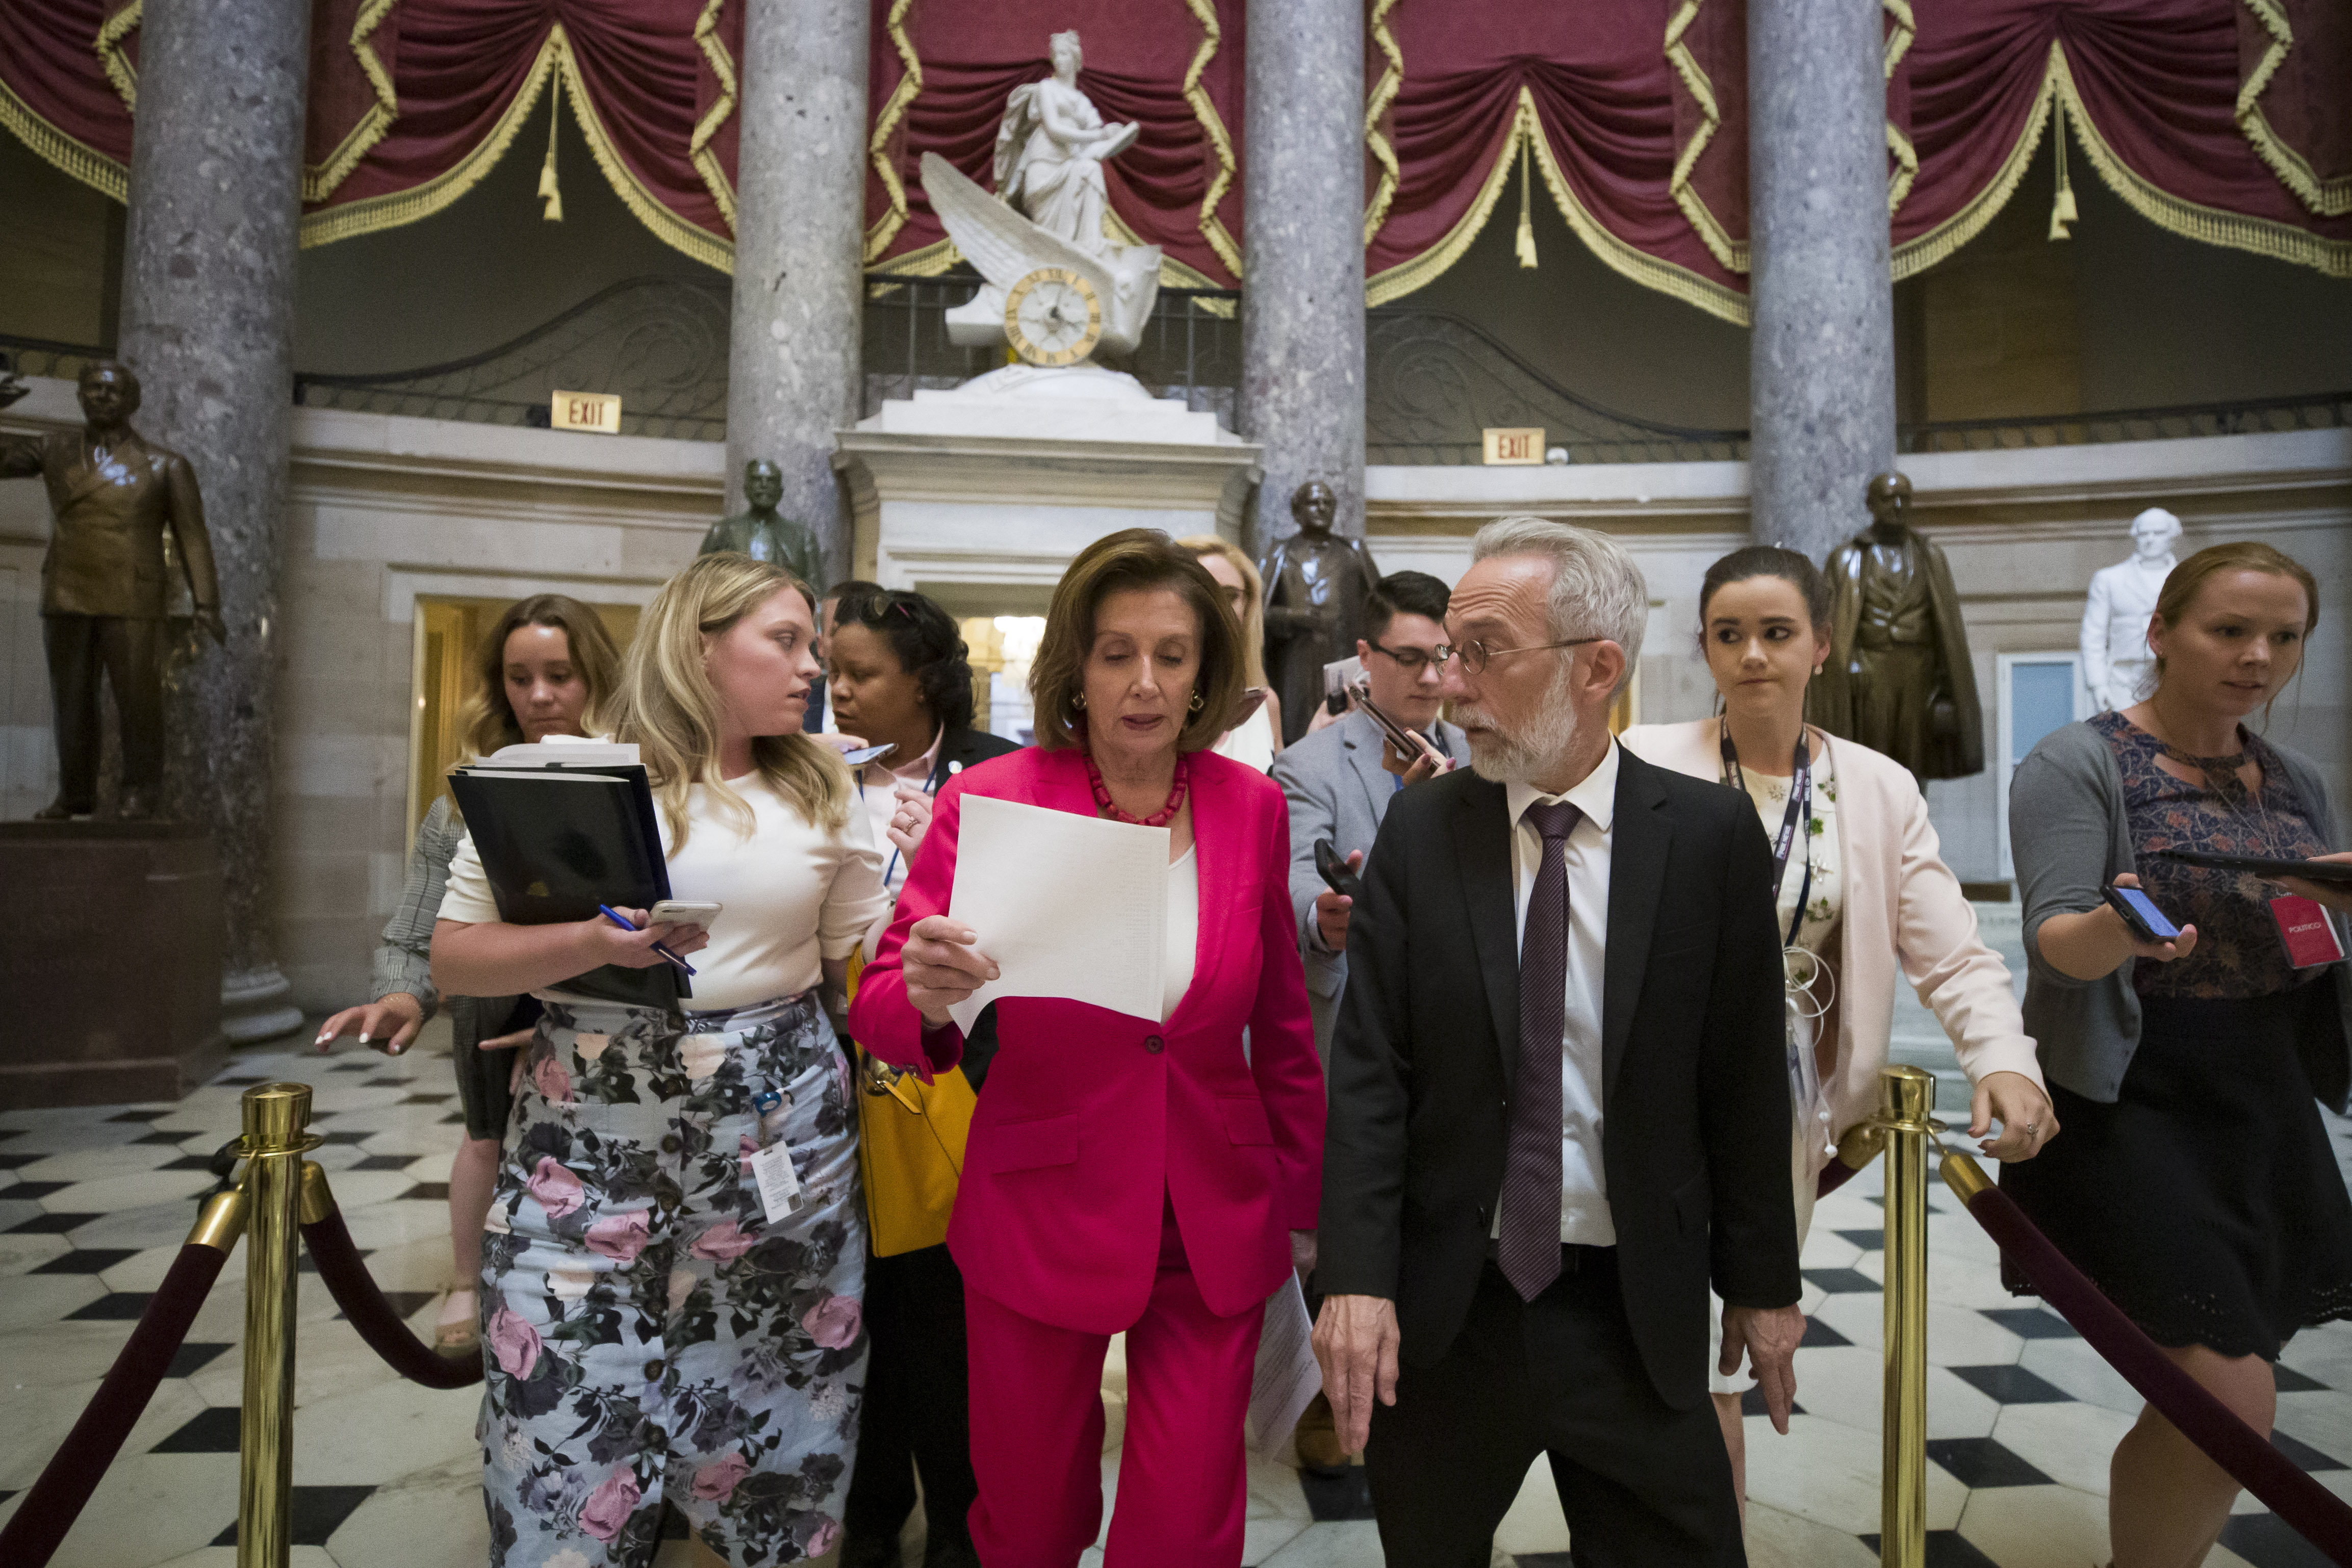 House Speaker Nancy Pelosi of Calif., walks to the House floor from her office on Capitol Hill, Thursday, June 27, 2019 in Washington. (AP Photo/Alex Brandon)